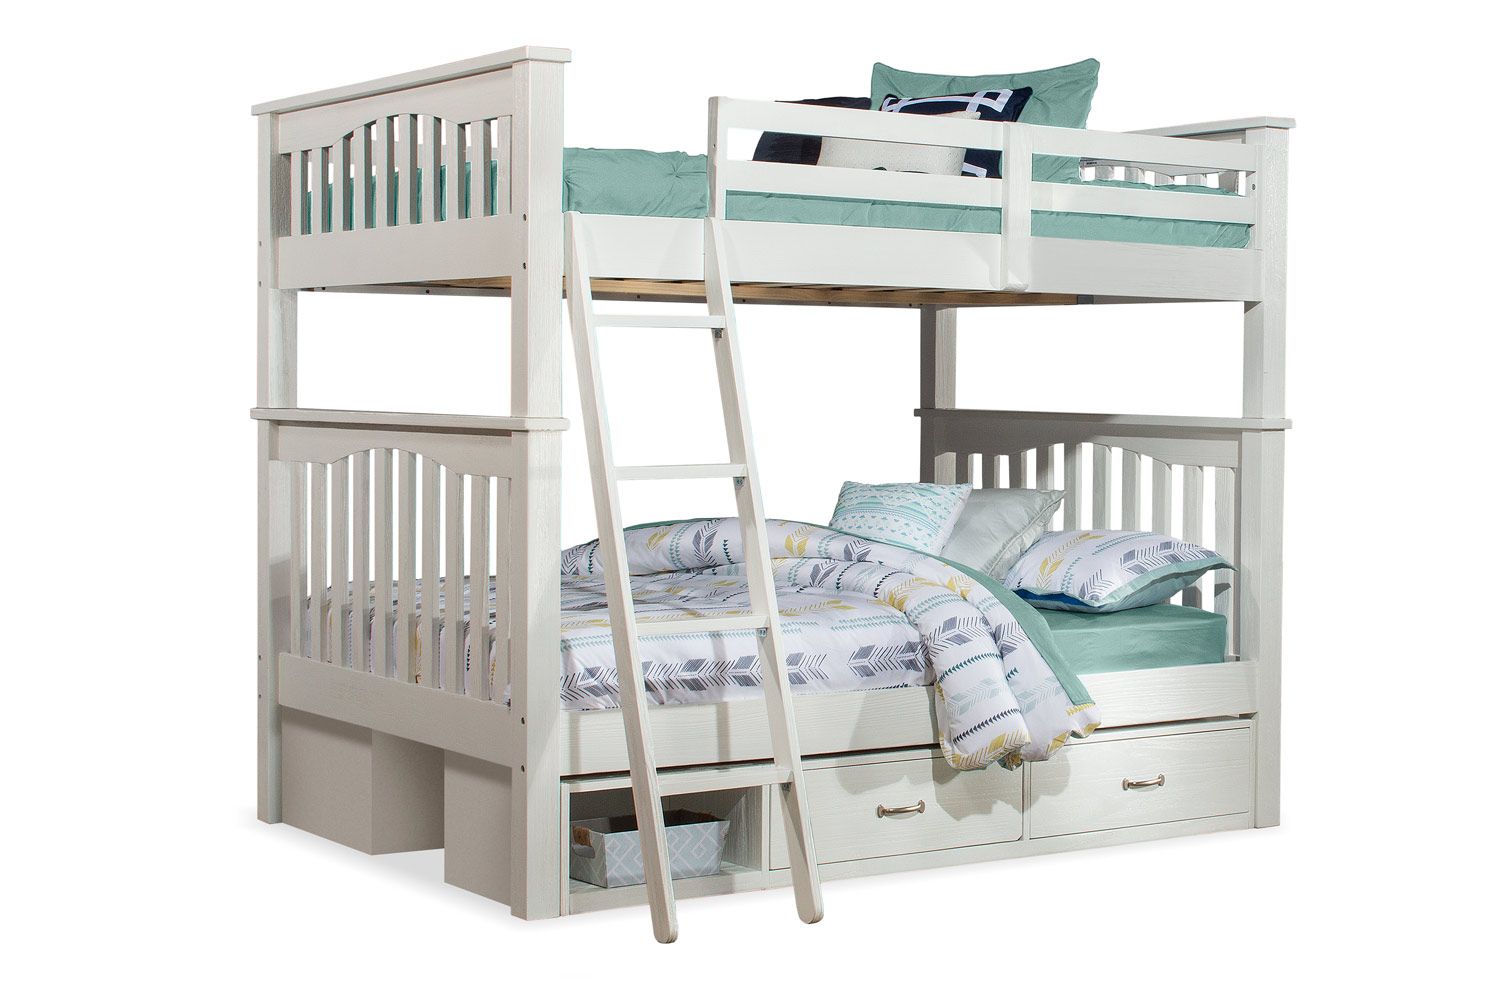 NE Kids Highlands Harper Full/Full Bunk Bed with (2) Storage Units - White Finish